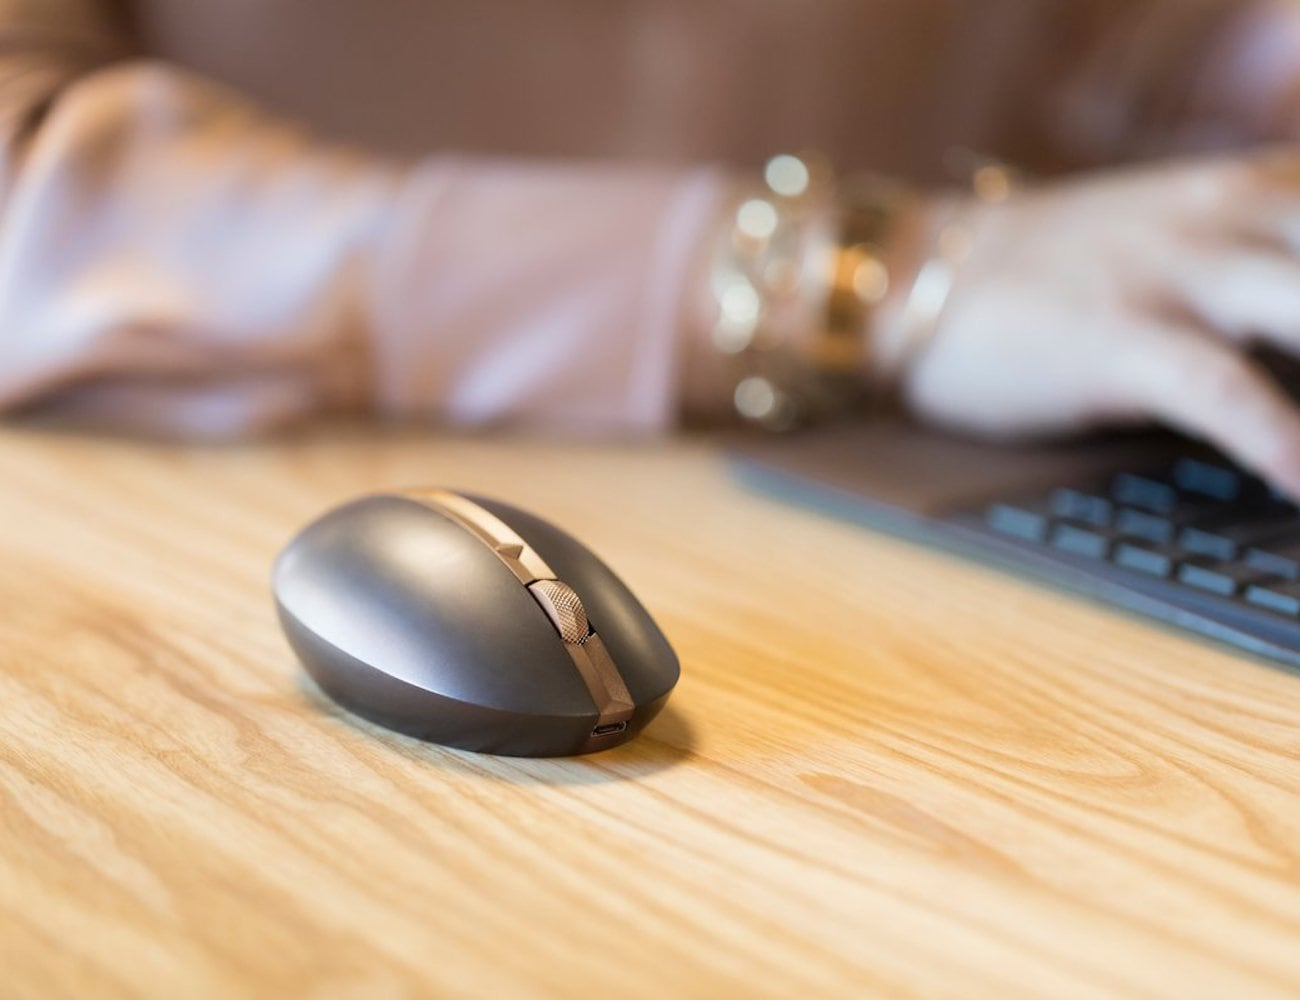 HP Spectre 700 Wireless Rechargeable Mouse improves productivity